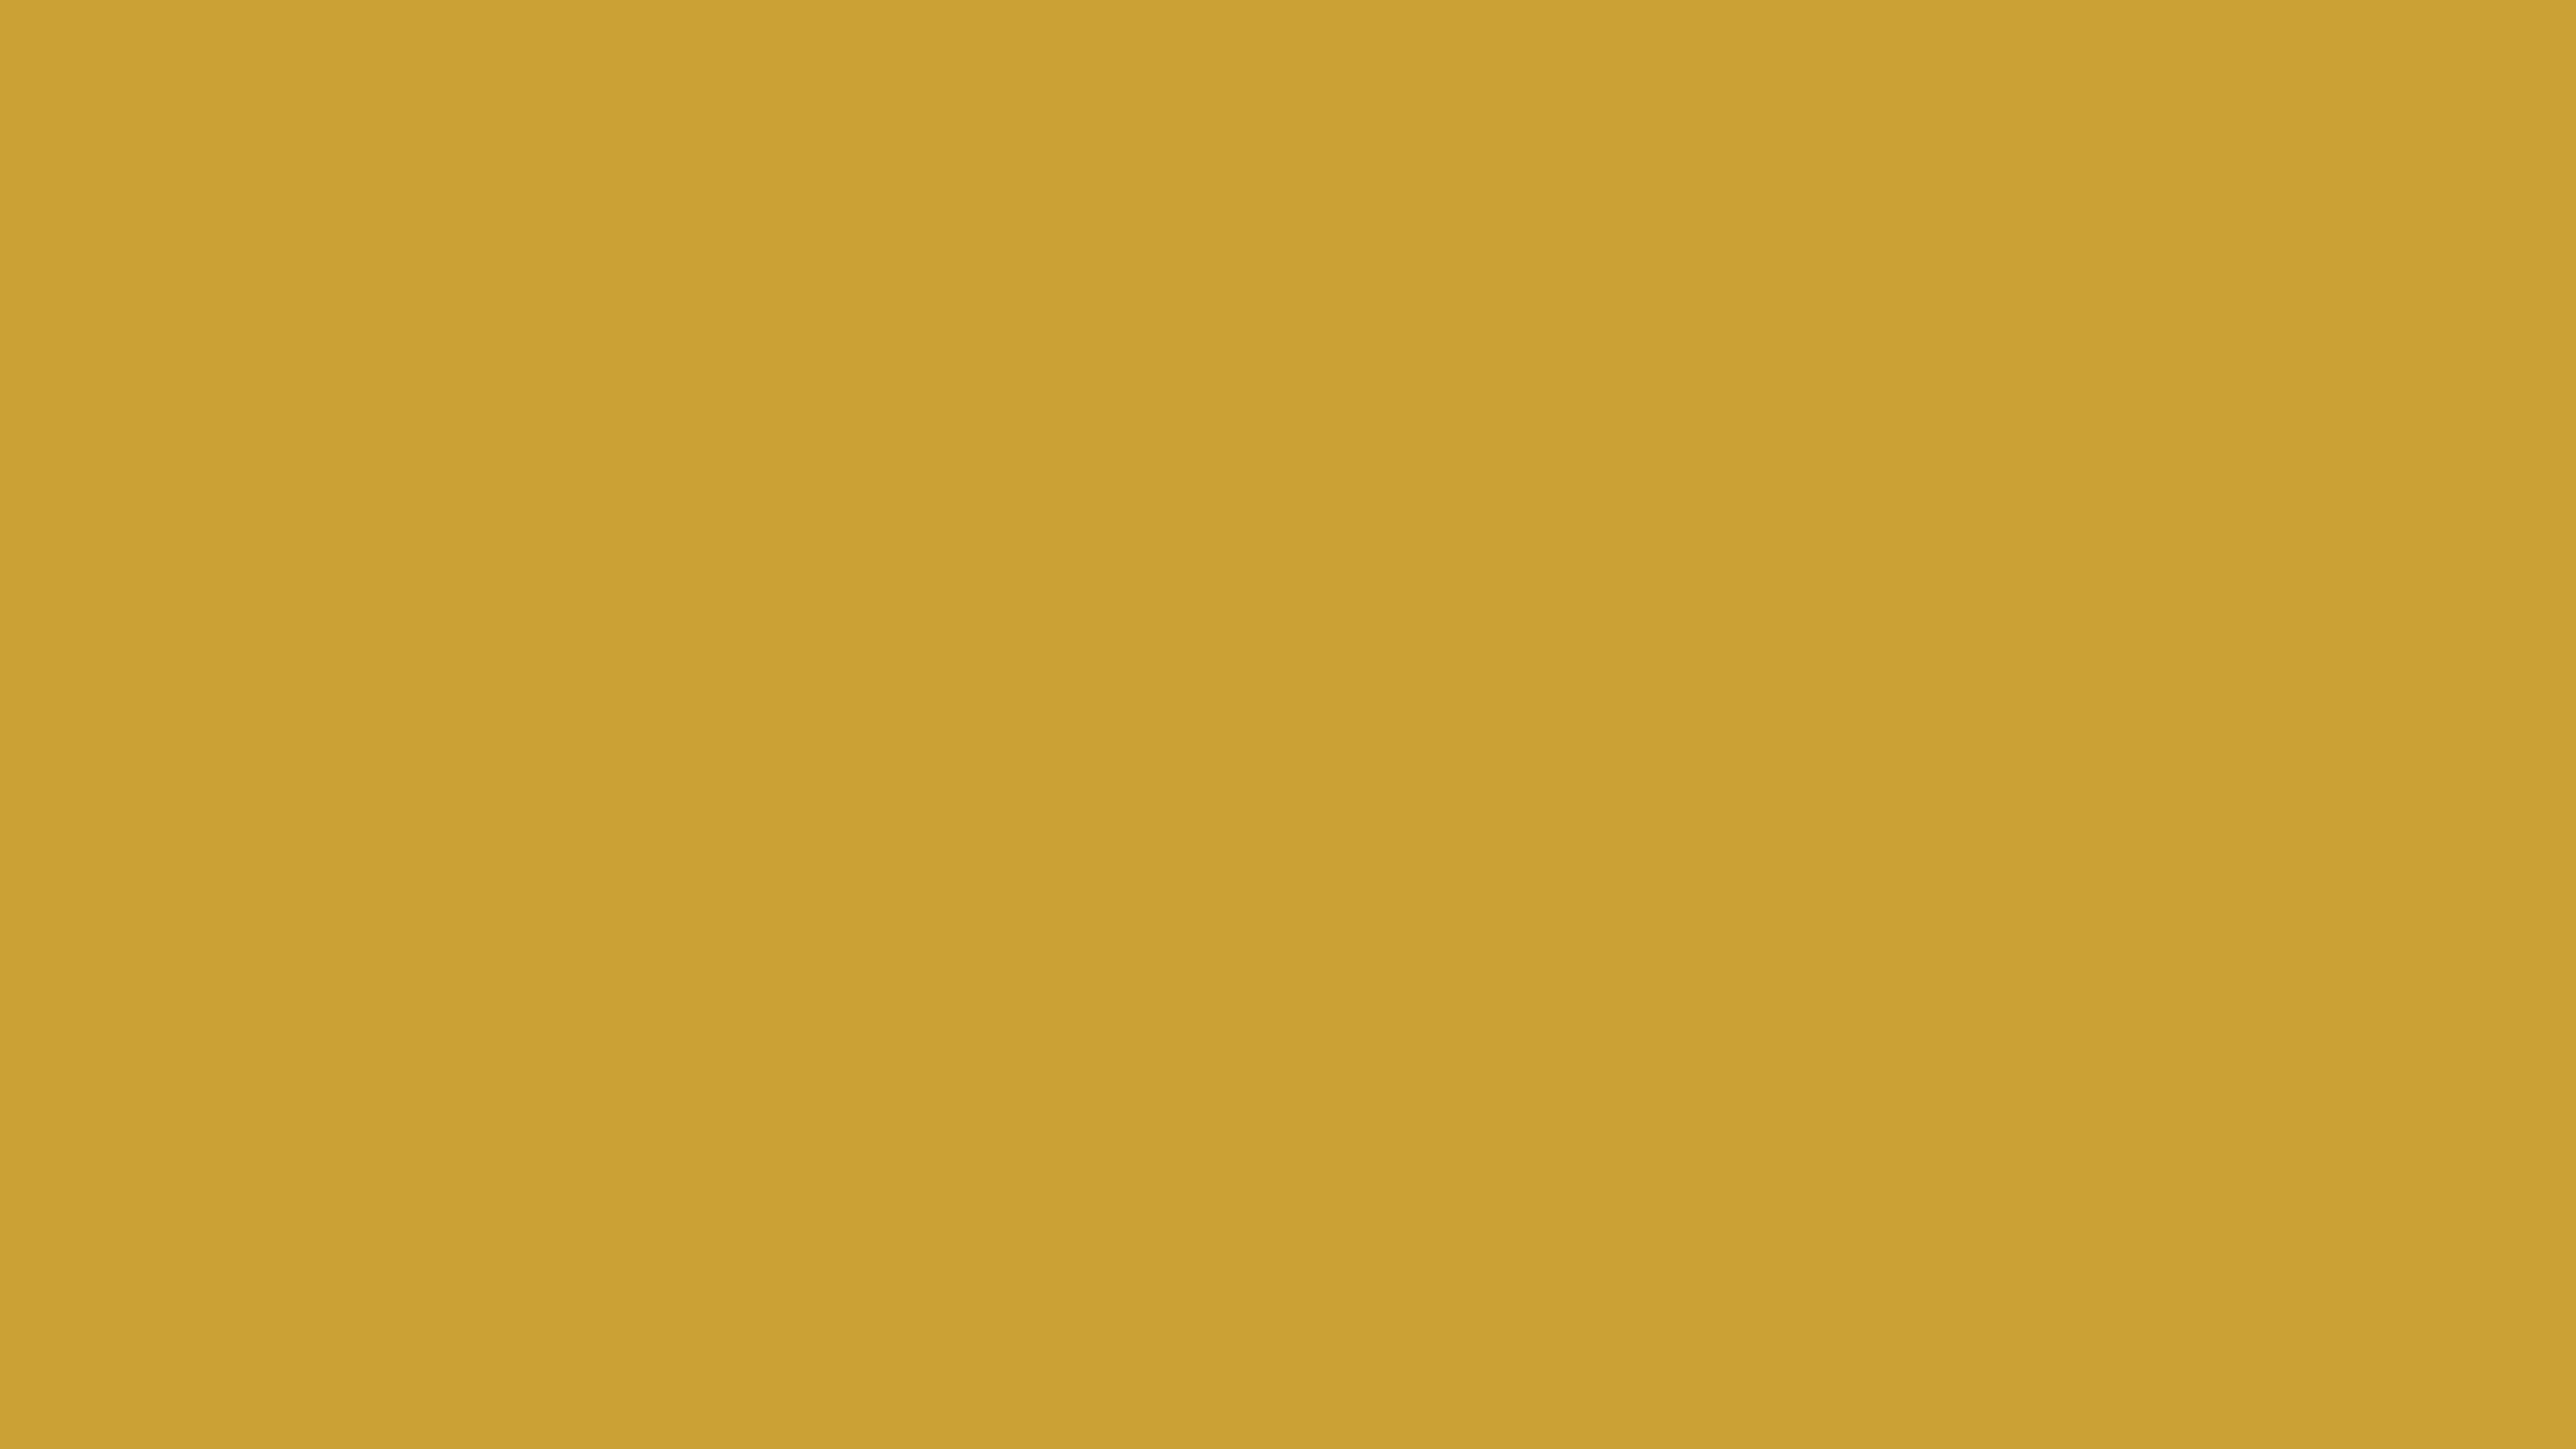 5120x2880 Satin Sheen Gold Solid Color Background